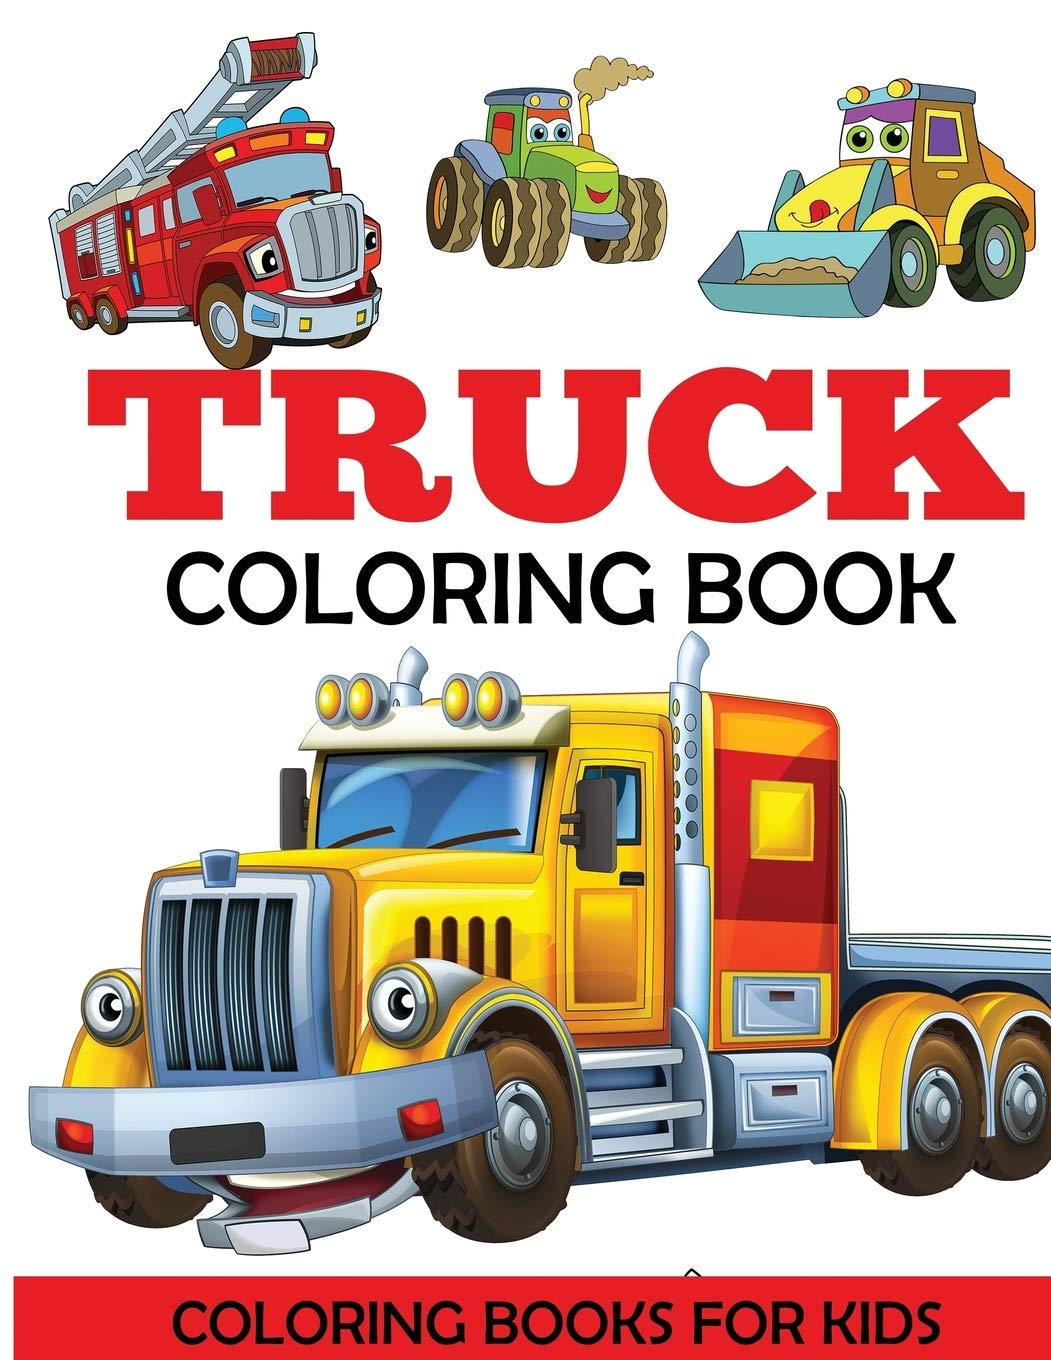 - Truck Coloring Book: Kids Coloring Book With Monster Trucks, Fire